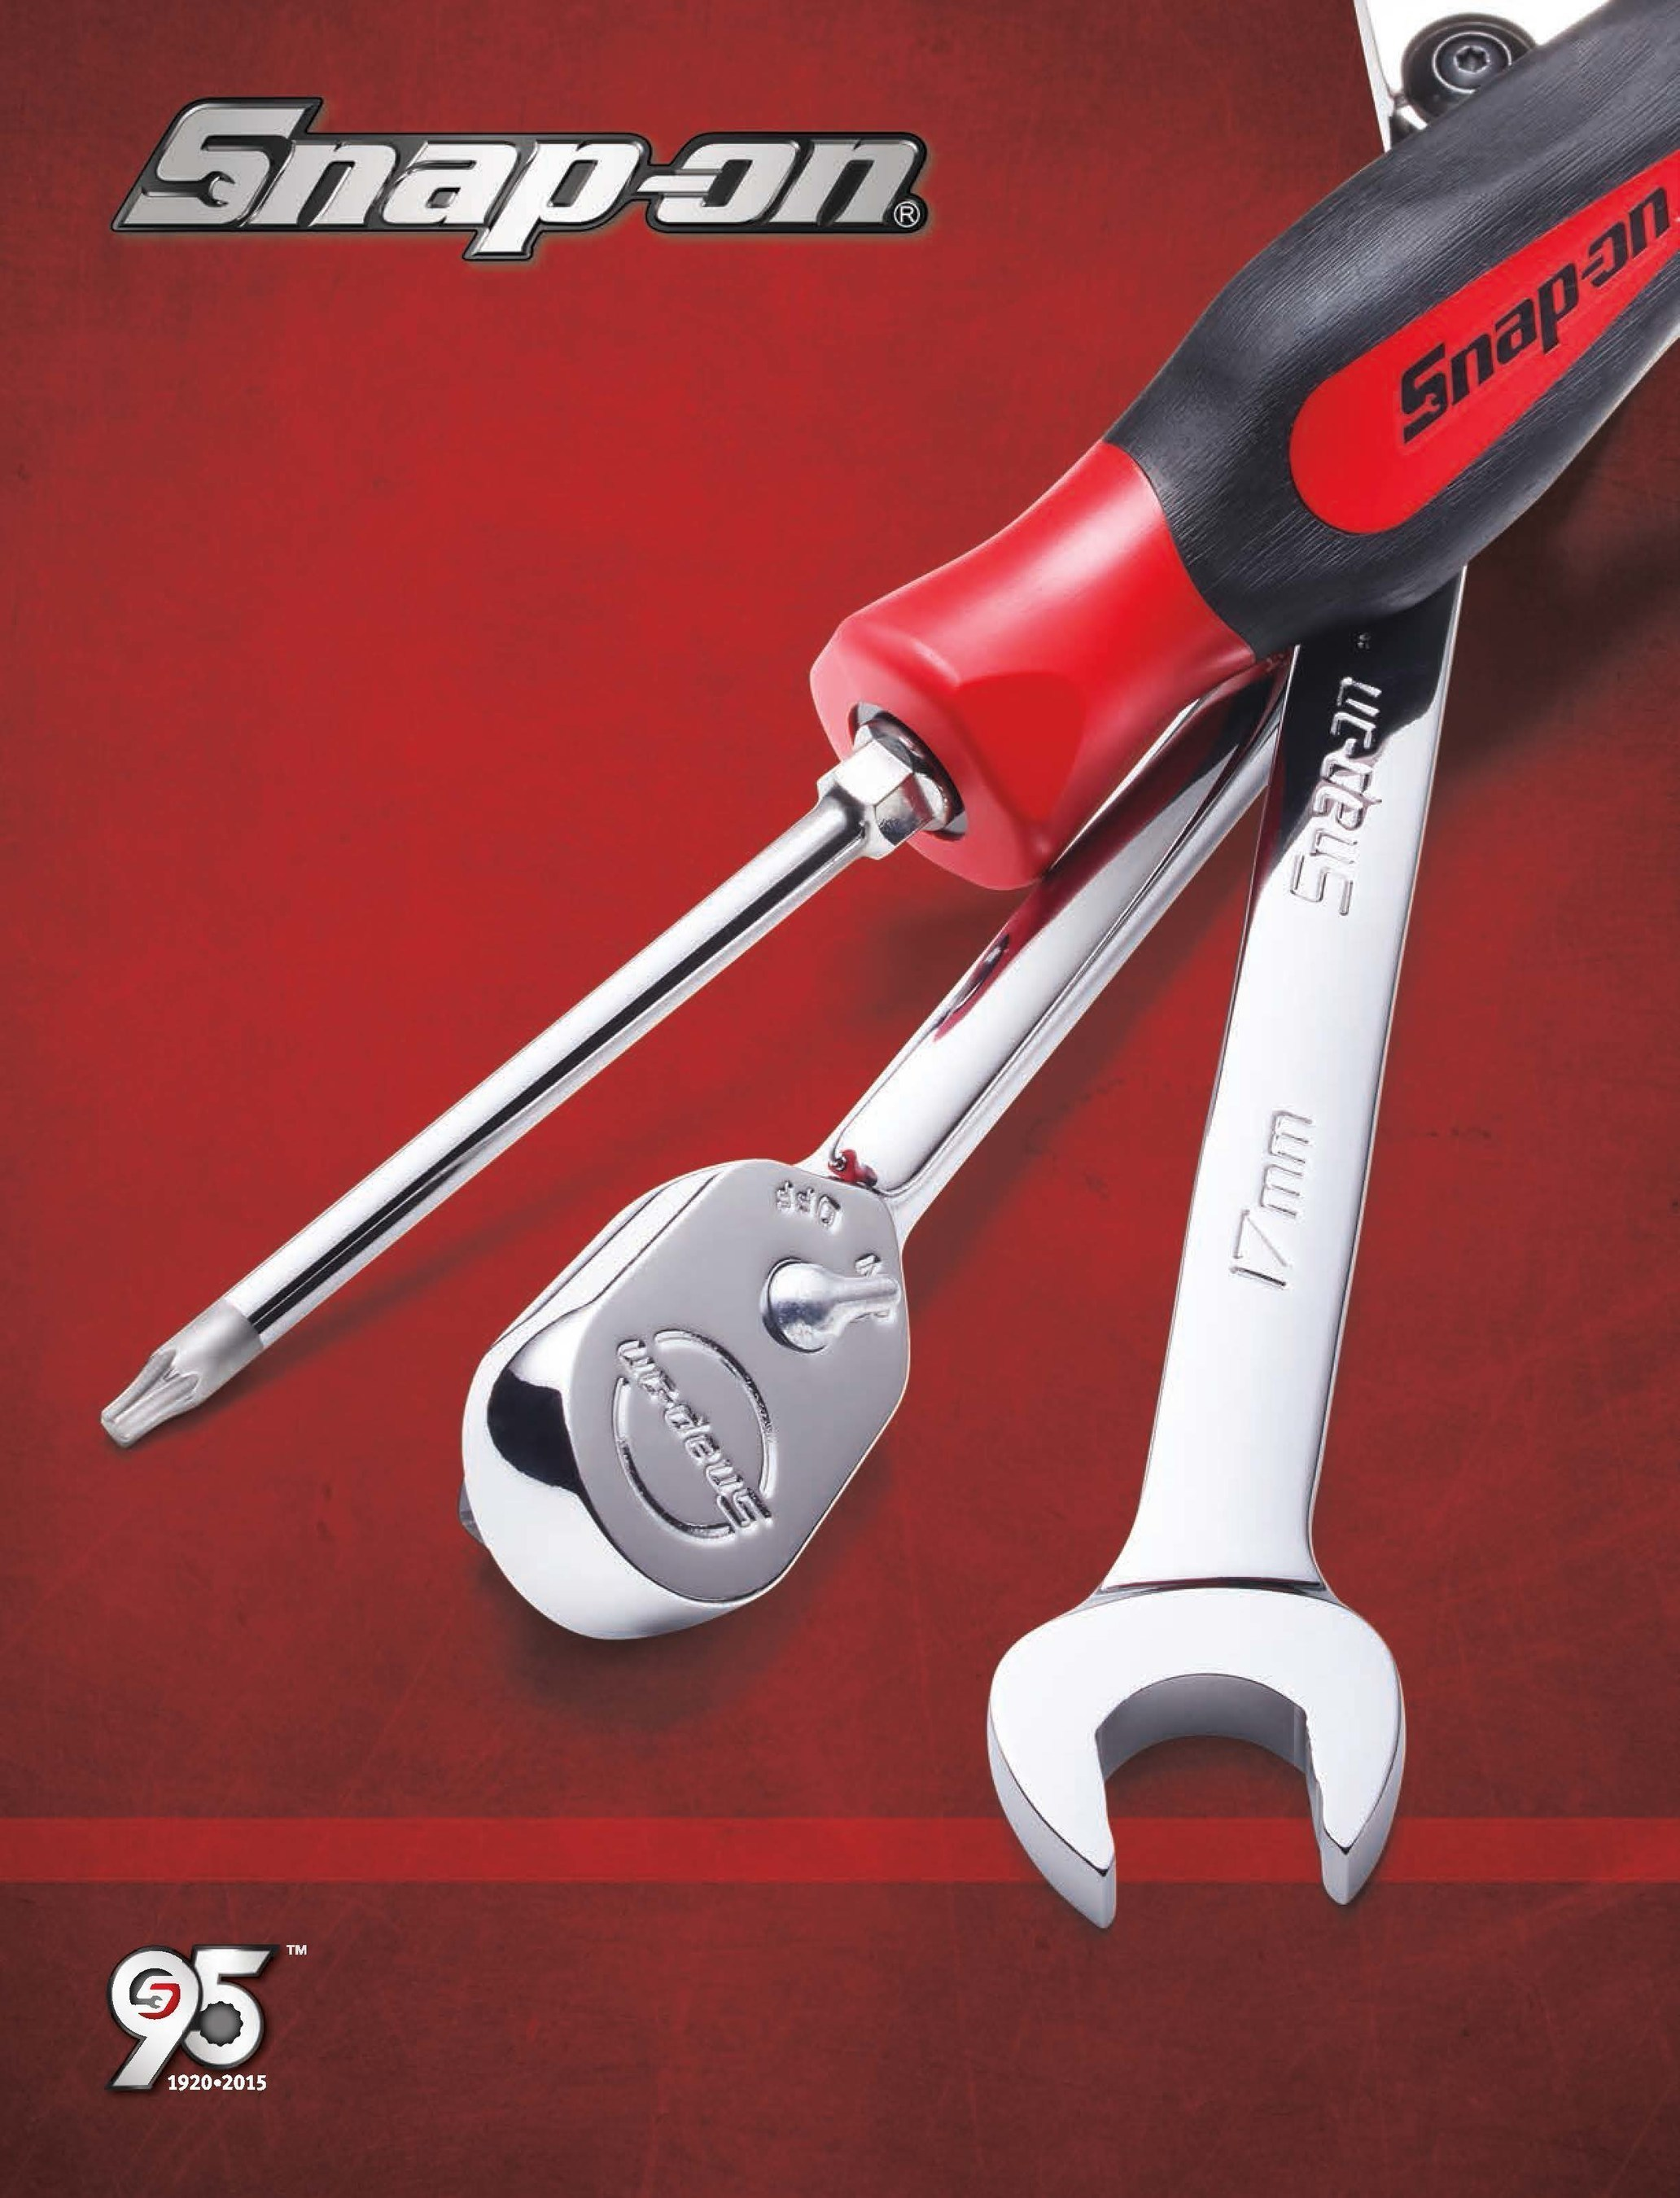 New Snap-on Tools Catalog Features Most Expansive Product